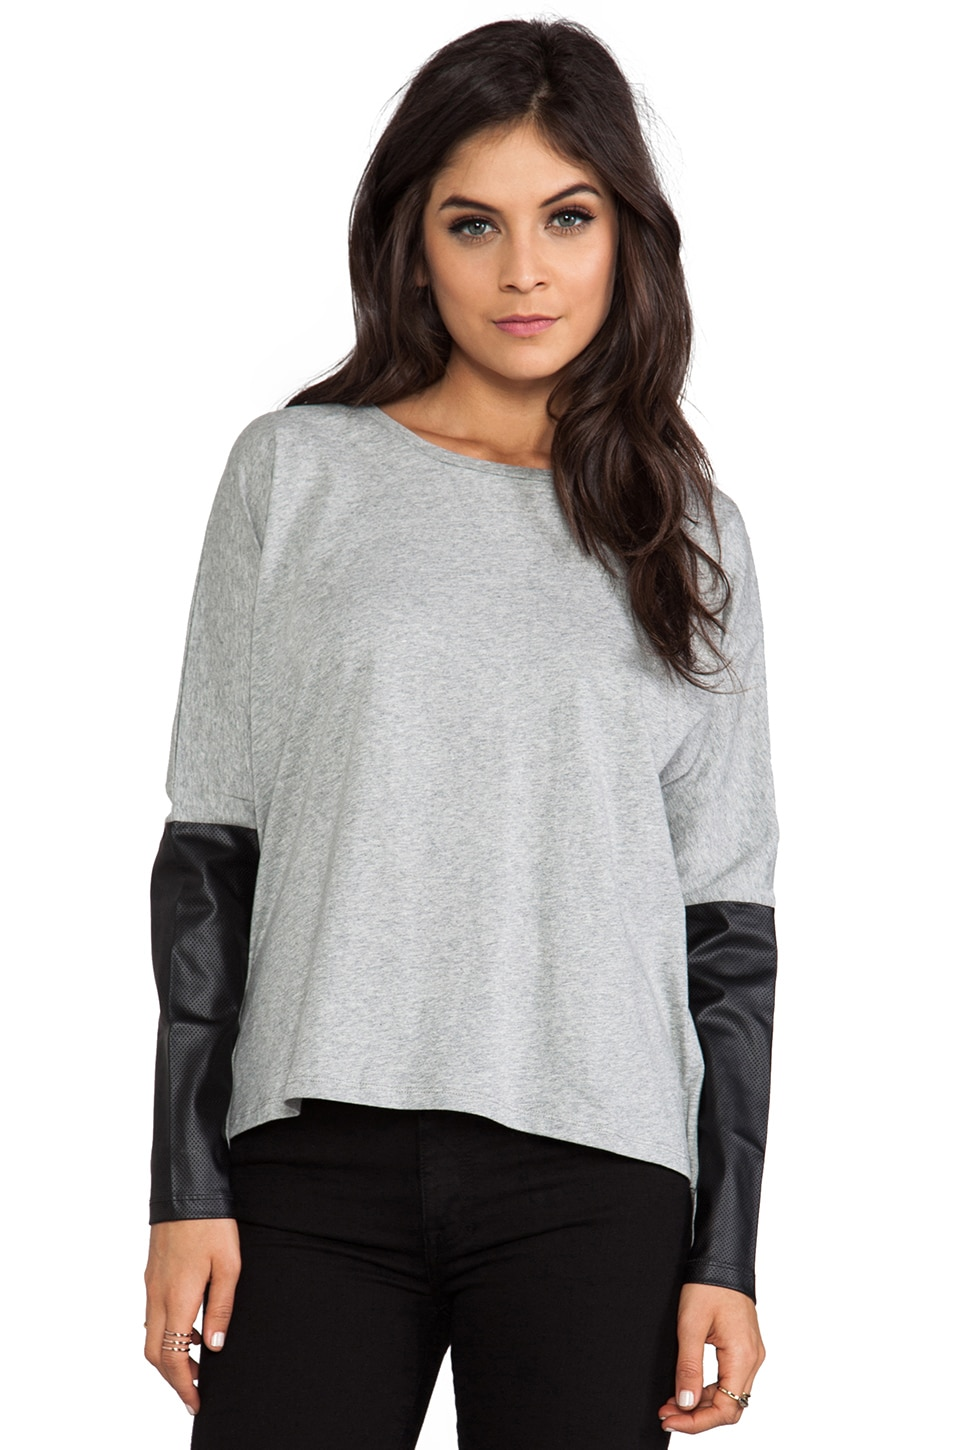 Lovers + Friends for REVOLVE Vegan Leather Tee/Black in Grey